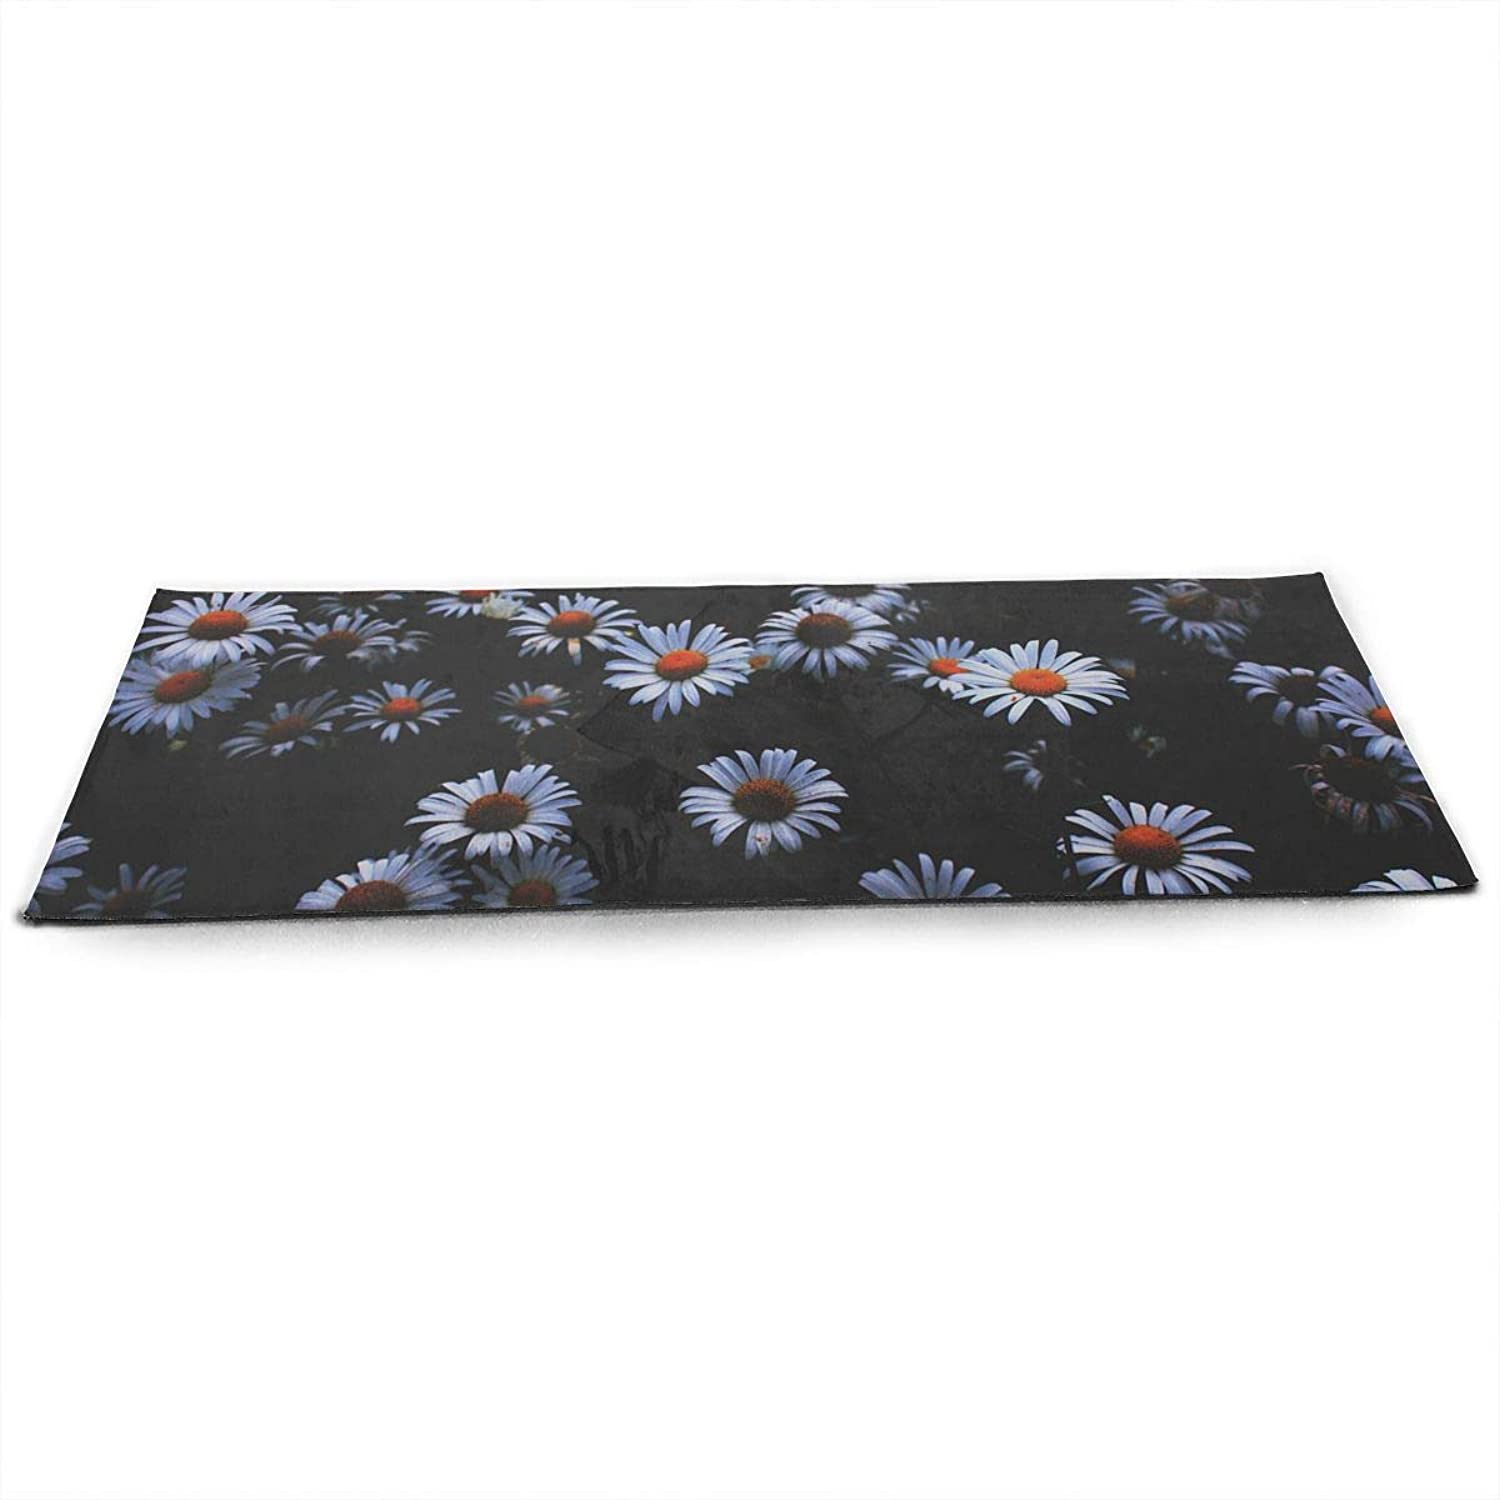 Whages Small White Chrysanthemum NonSlip Soft Advanced Printed Environmental Yoga Mat 31.5   × 51.2